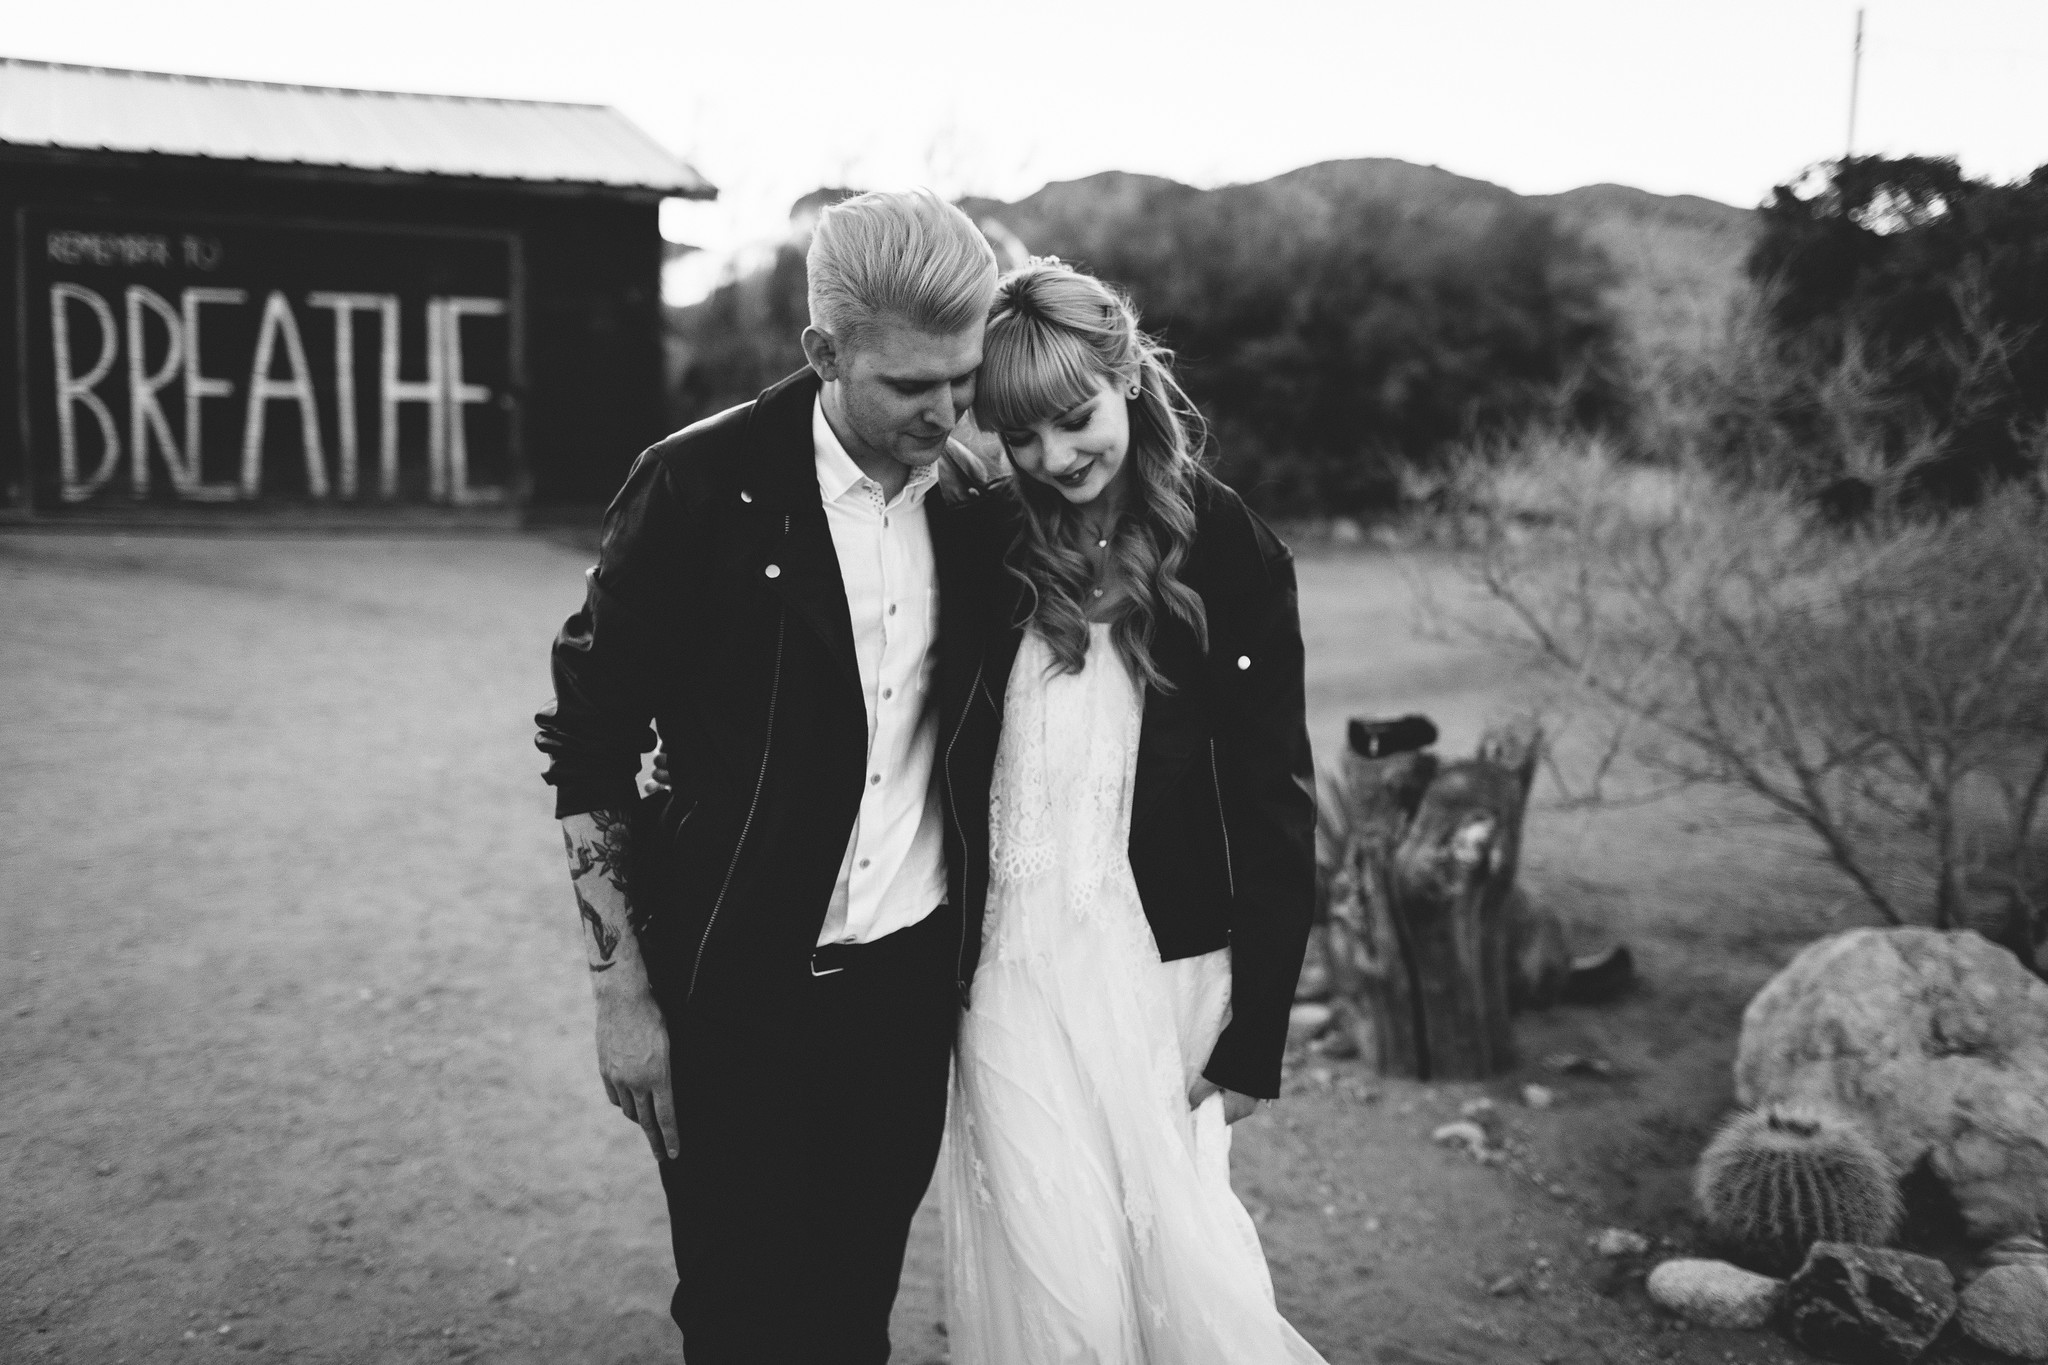 zoe-london-wedding-joshua-tree-43.jpg